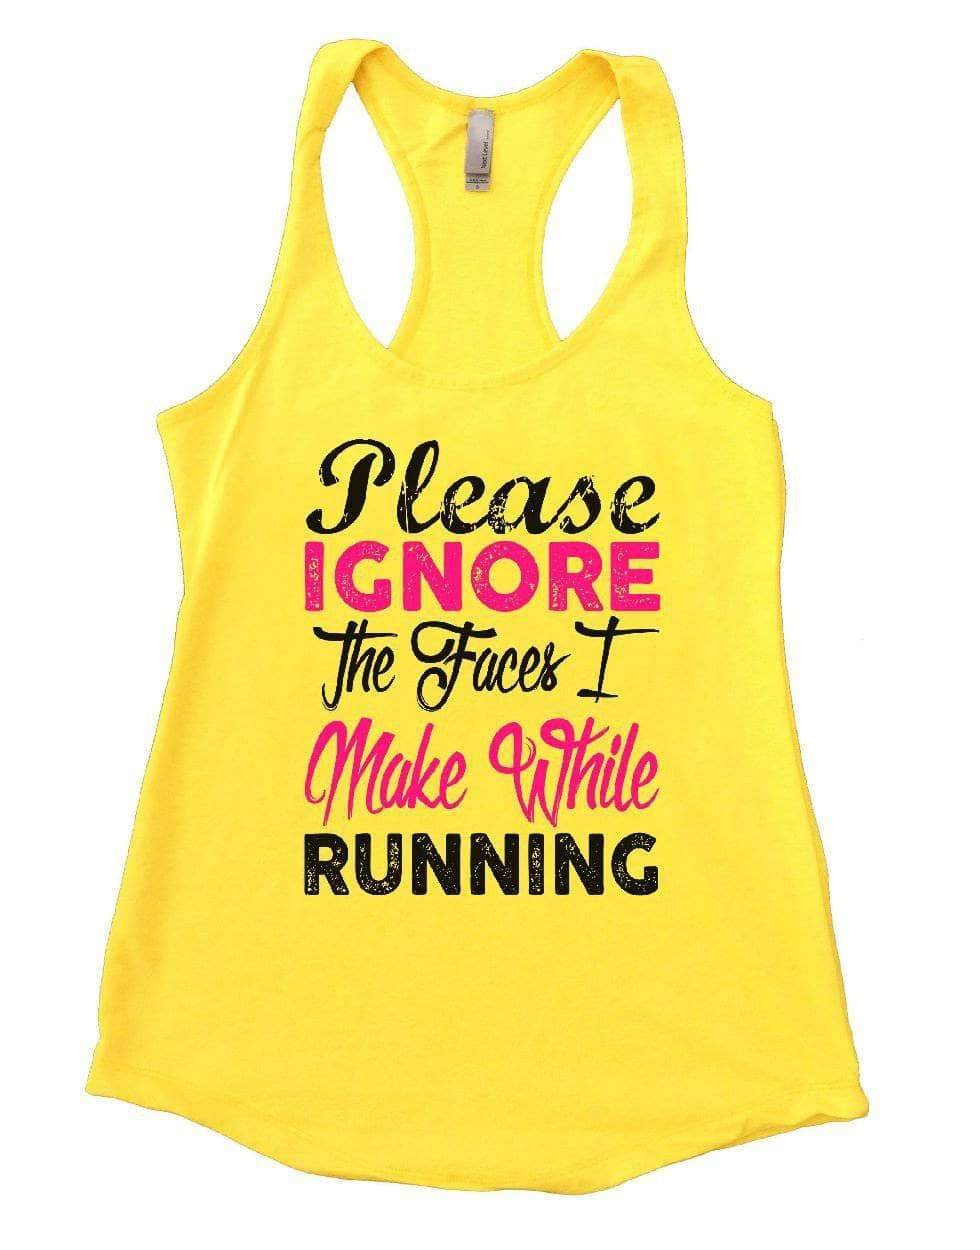 Please IGNORE The Faces I Make While Running Womens Workout Tank Top Small Womens Tank Tops Yellow